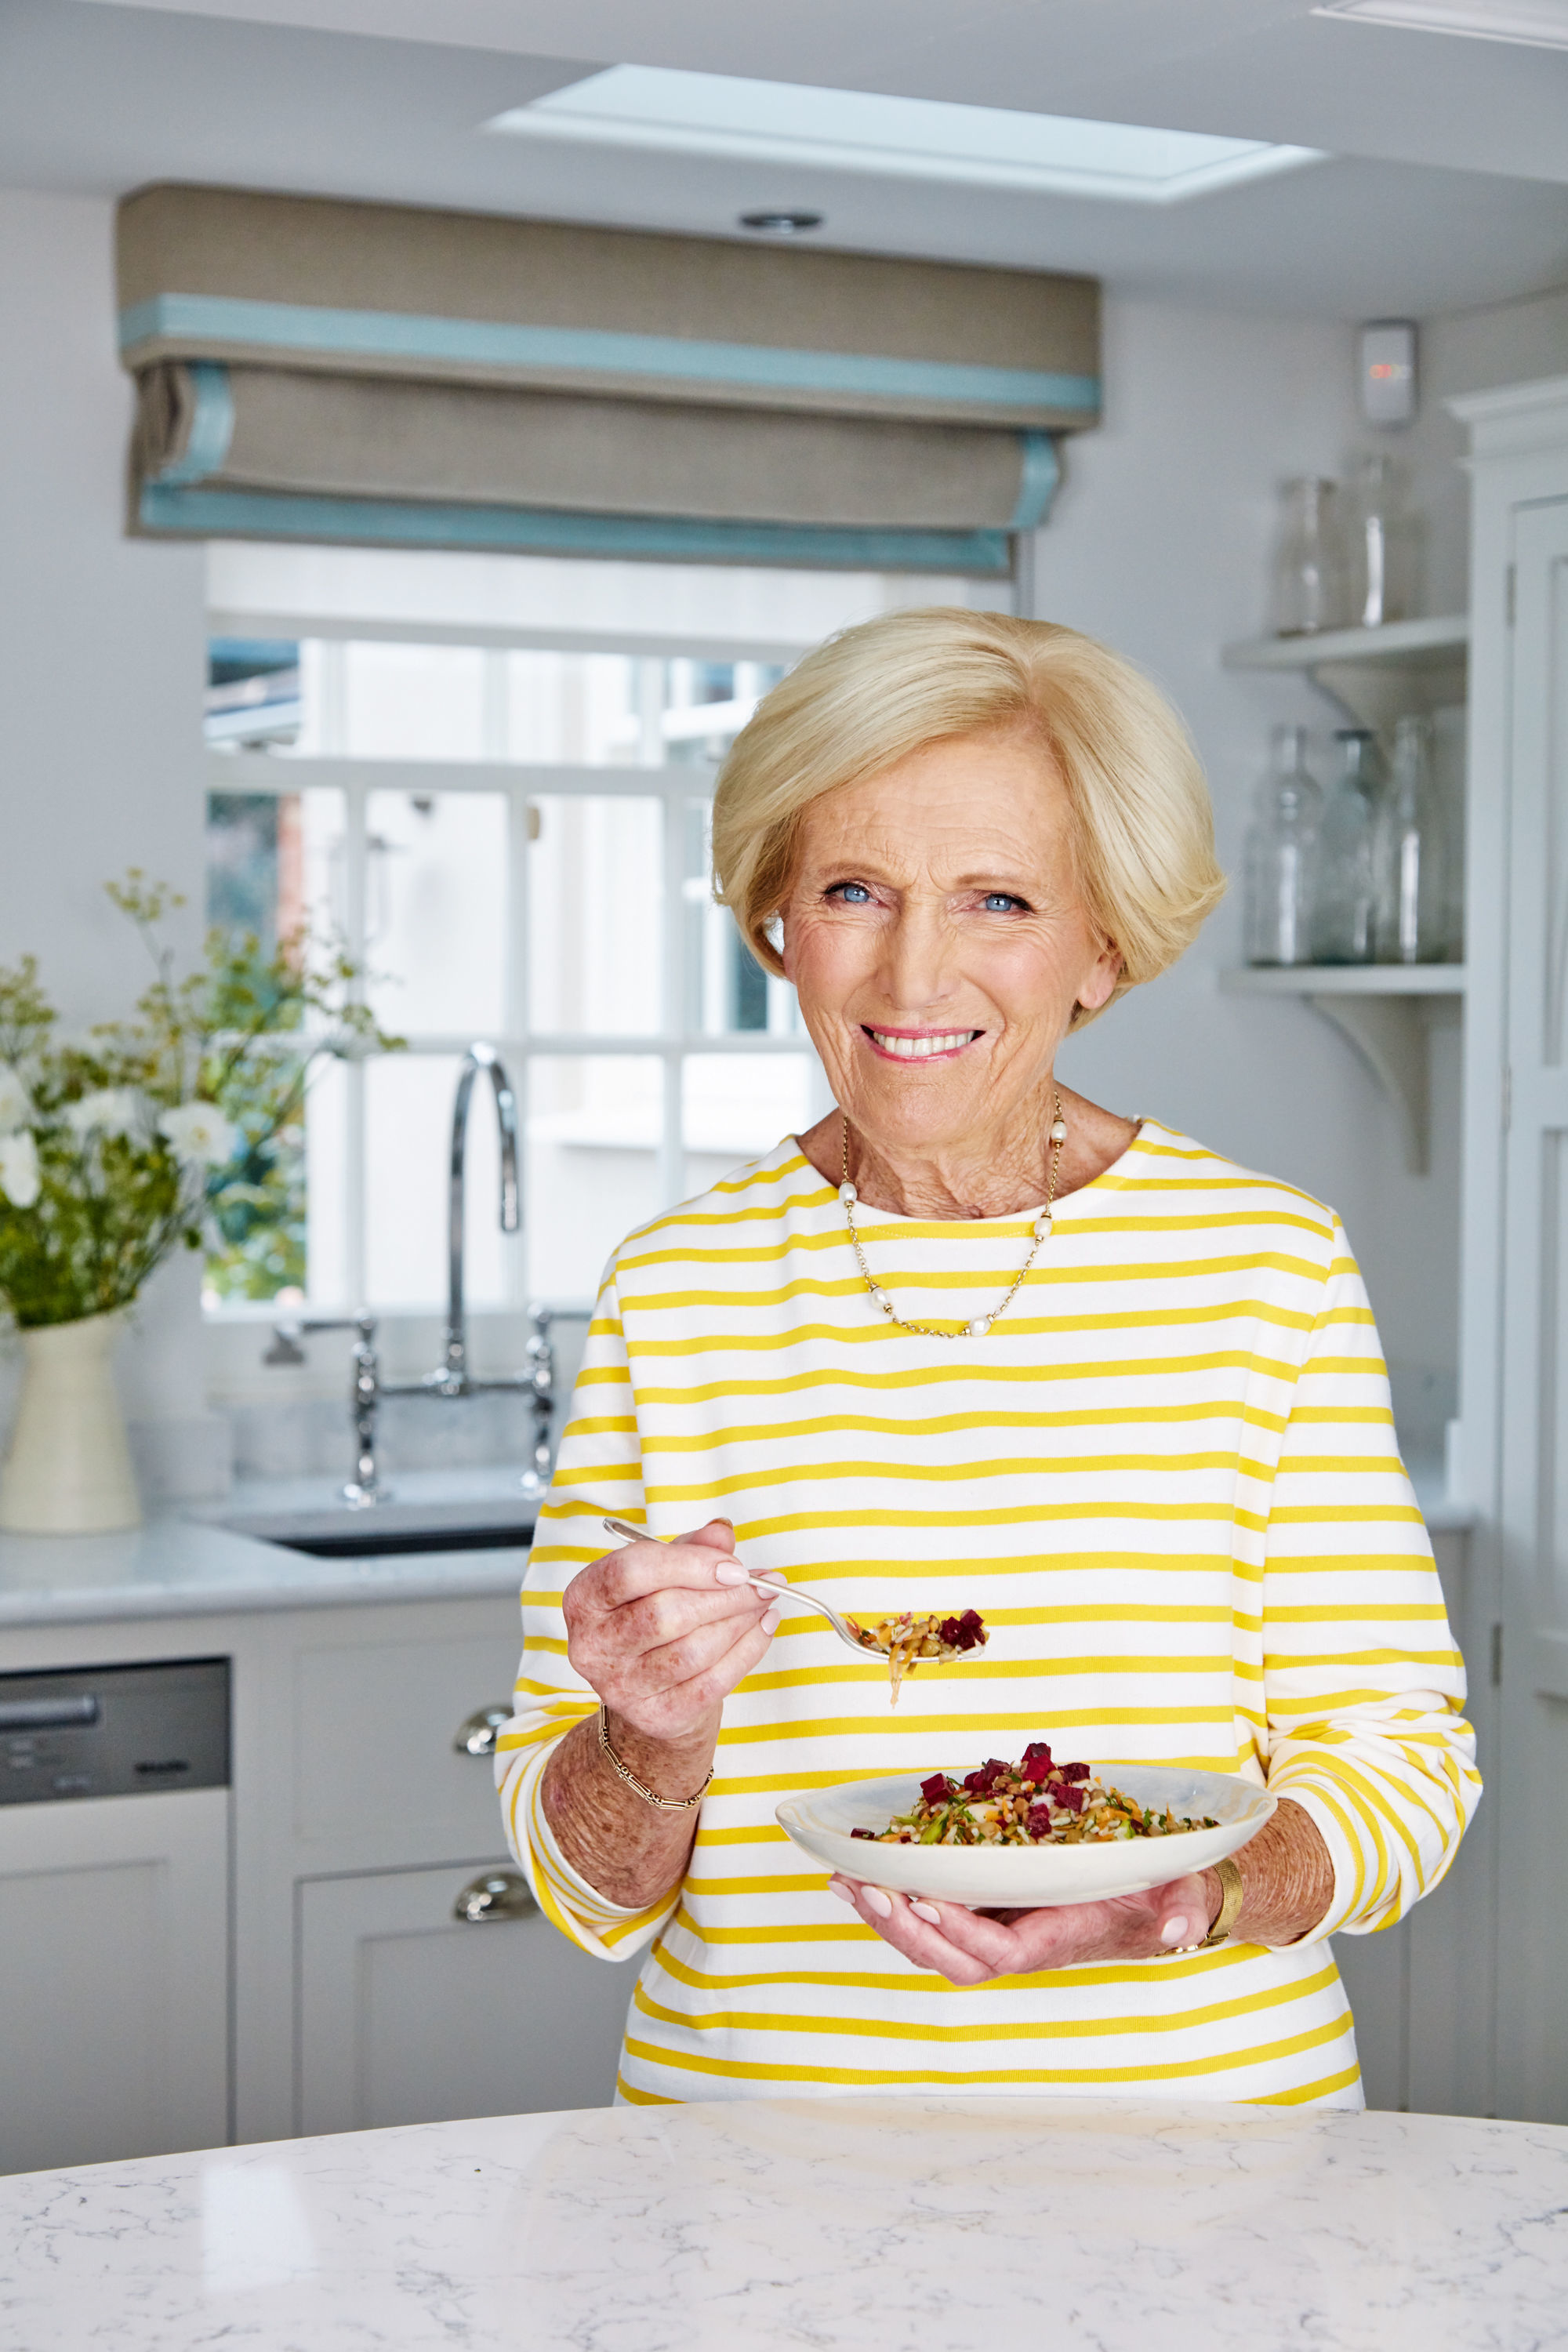 Here's what happened when we tried three recipes from Mary Berry's new cookbook